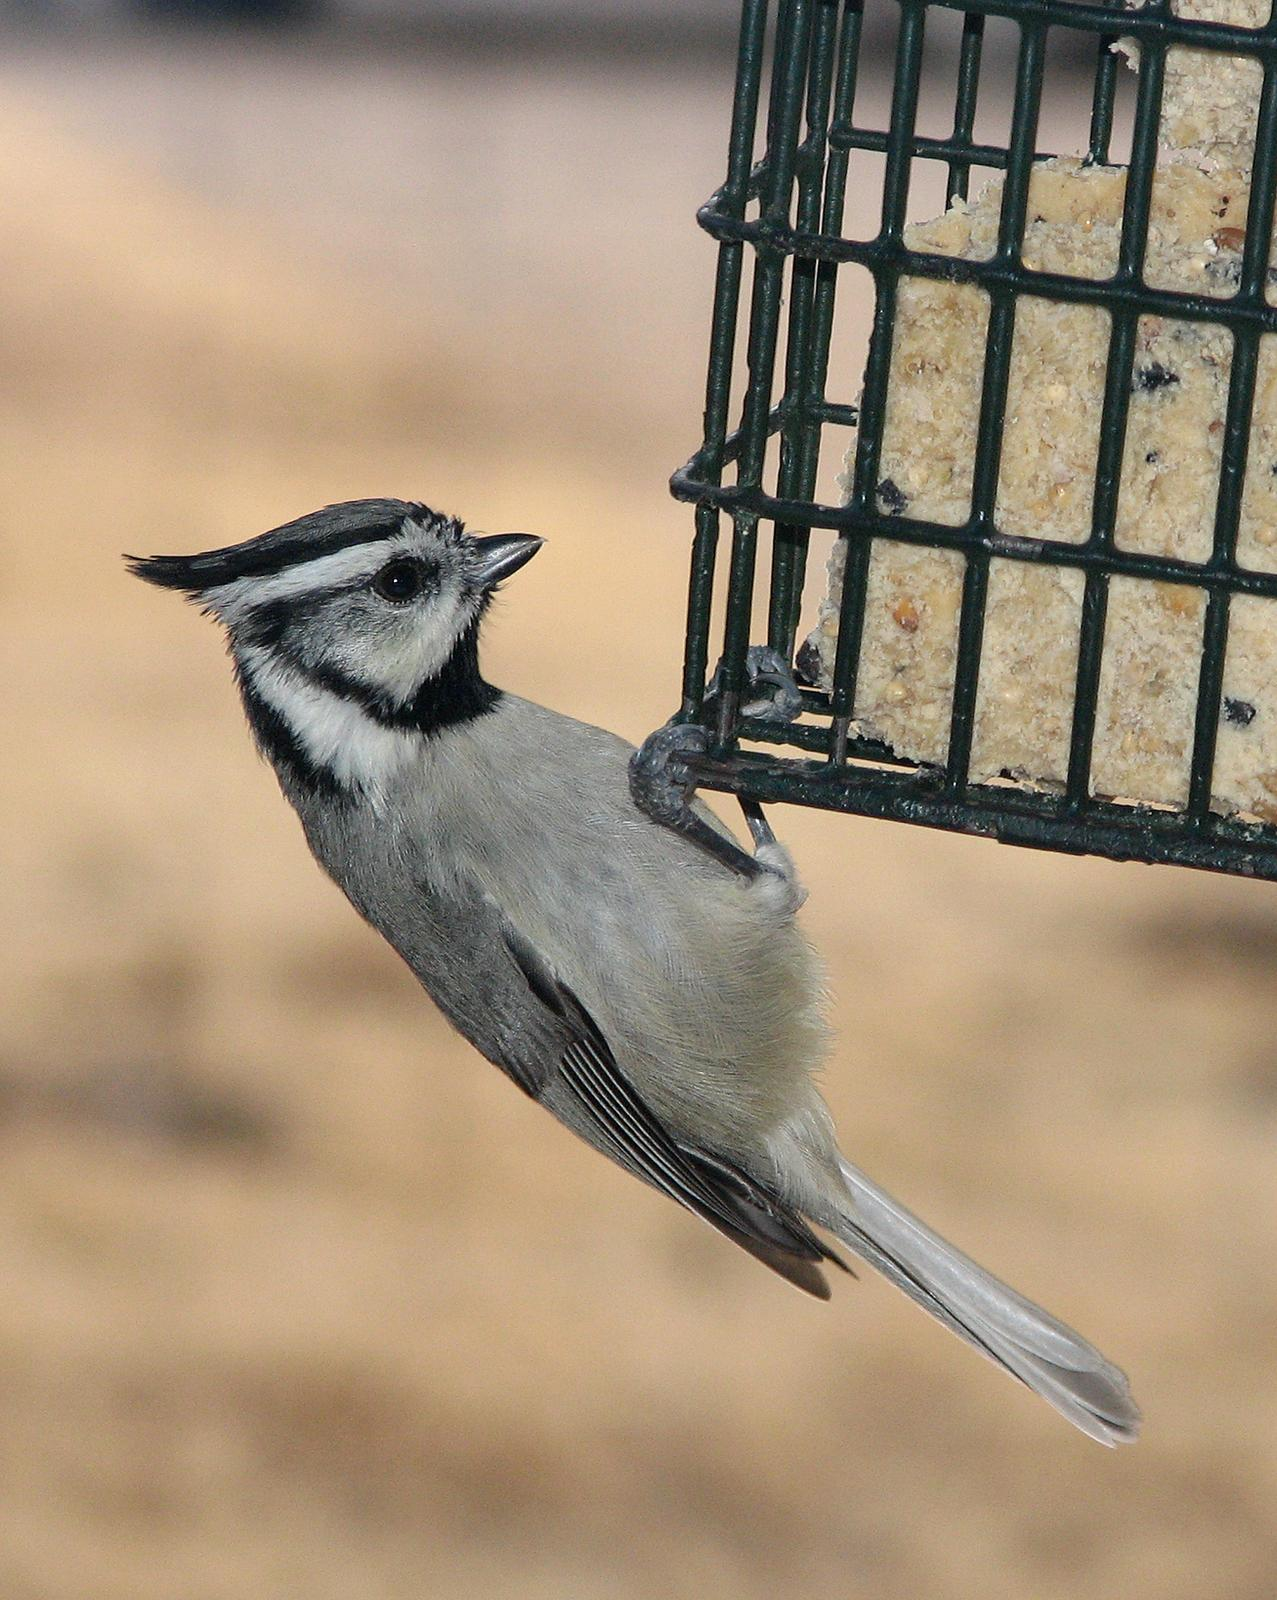 Bridled Titmouse Photo by Robert Behrstock